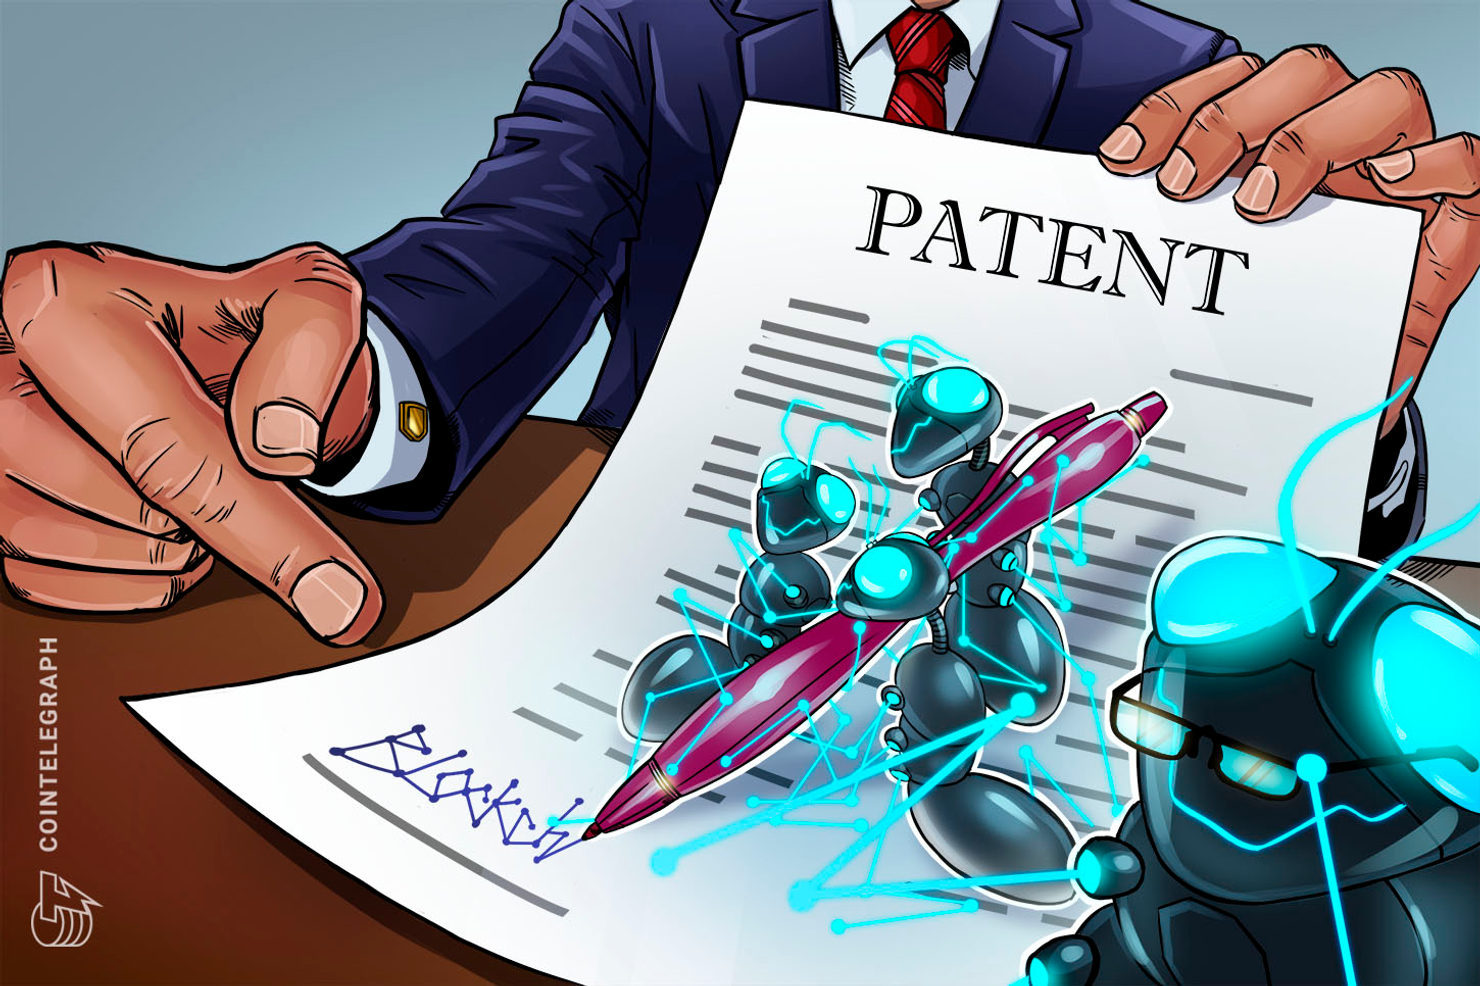 Bank of America Files Patent for Multi-Tiered Digital Currency Wallet